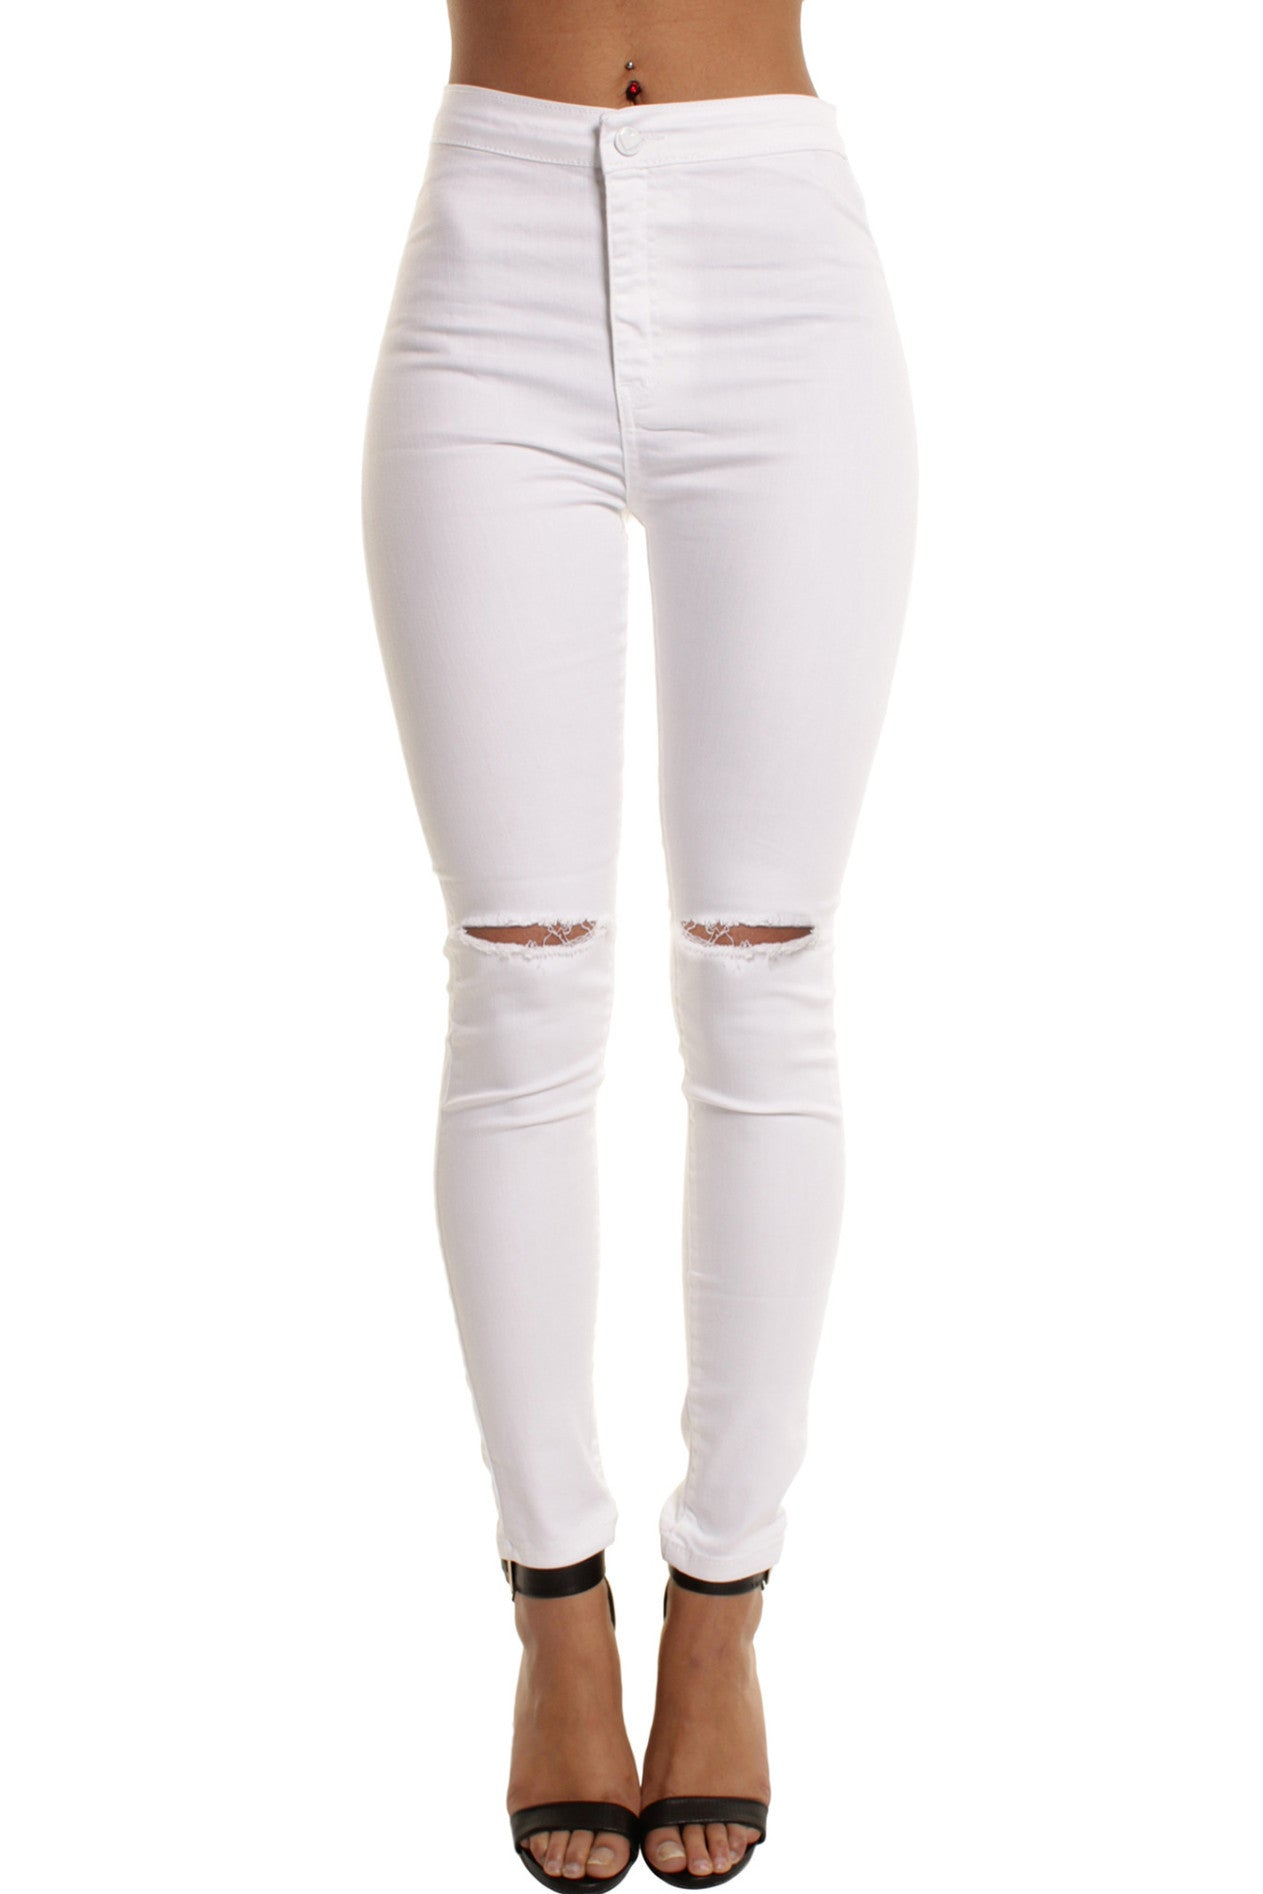 High Waisted Ripped White Jeans RpIHbGee